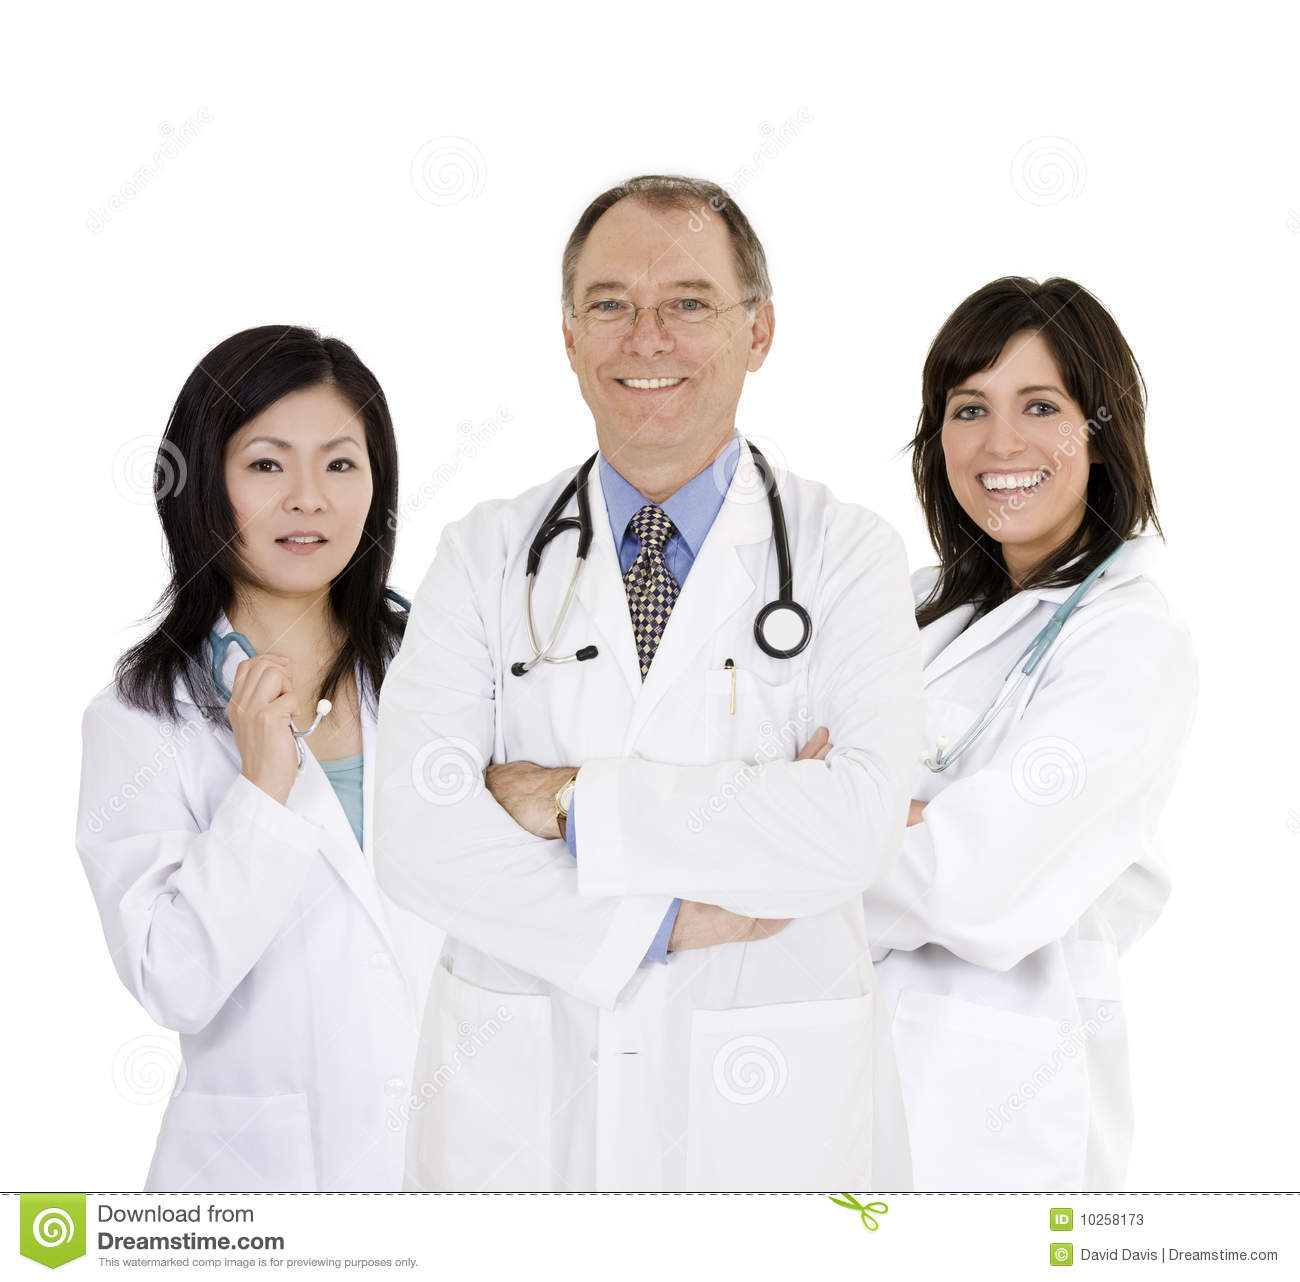 Group of confident doctors and nurses with their arms crossed displaying some attitude